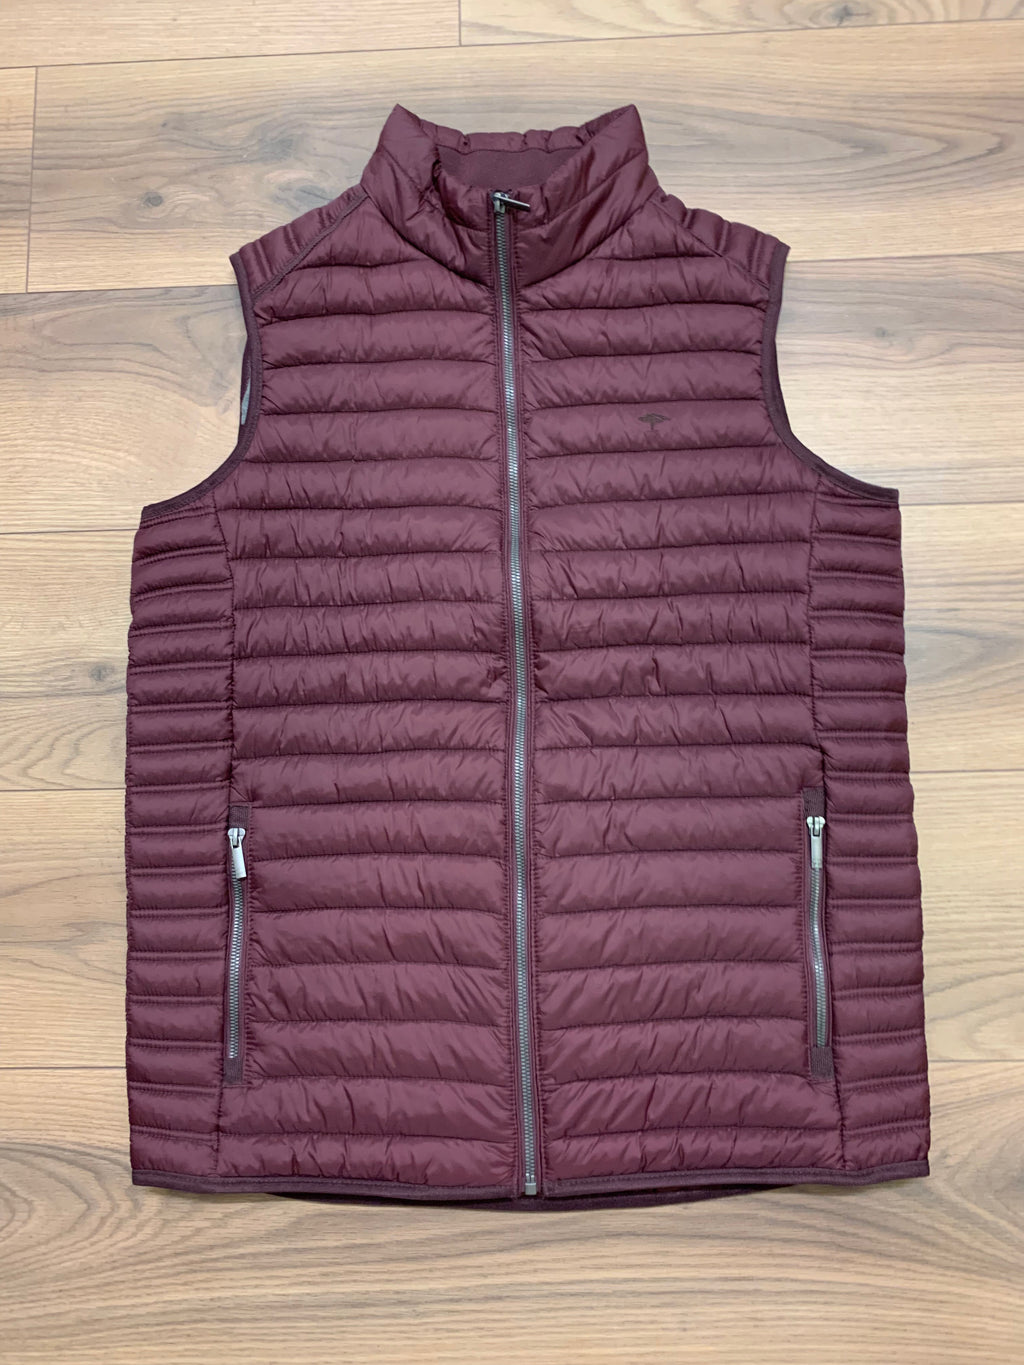 Fynch Hatton Gillet - Oxblood(Wine)